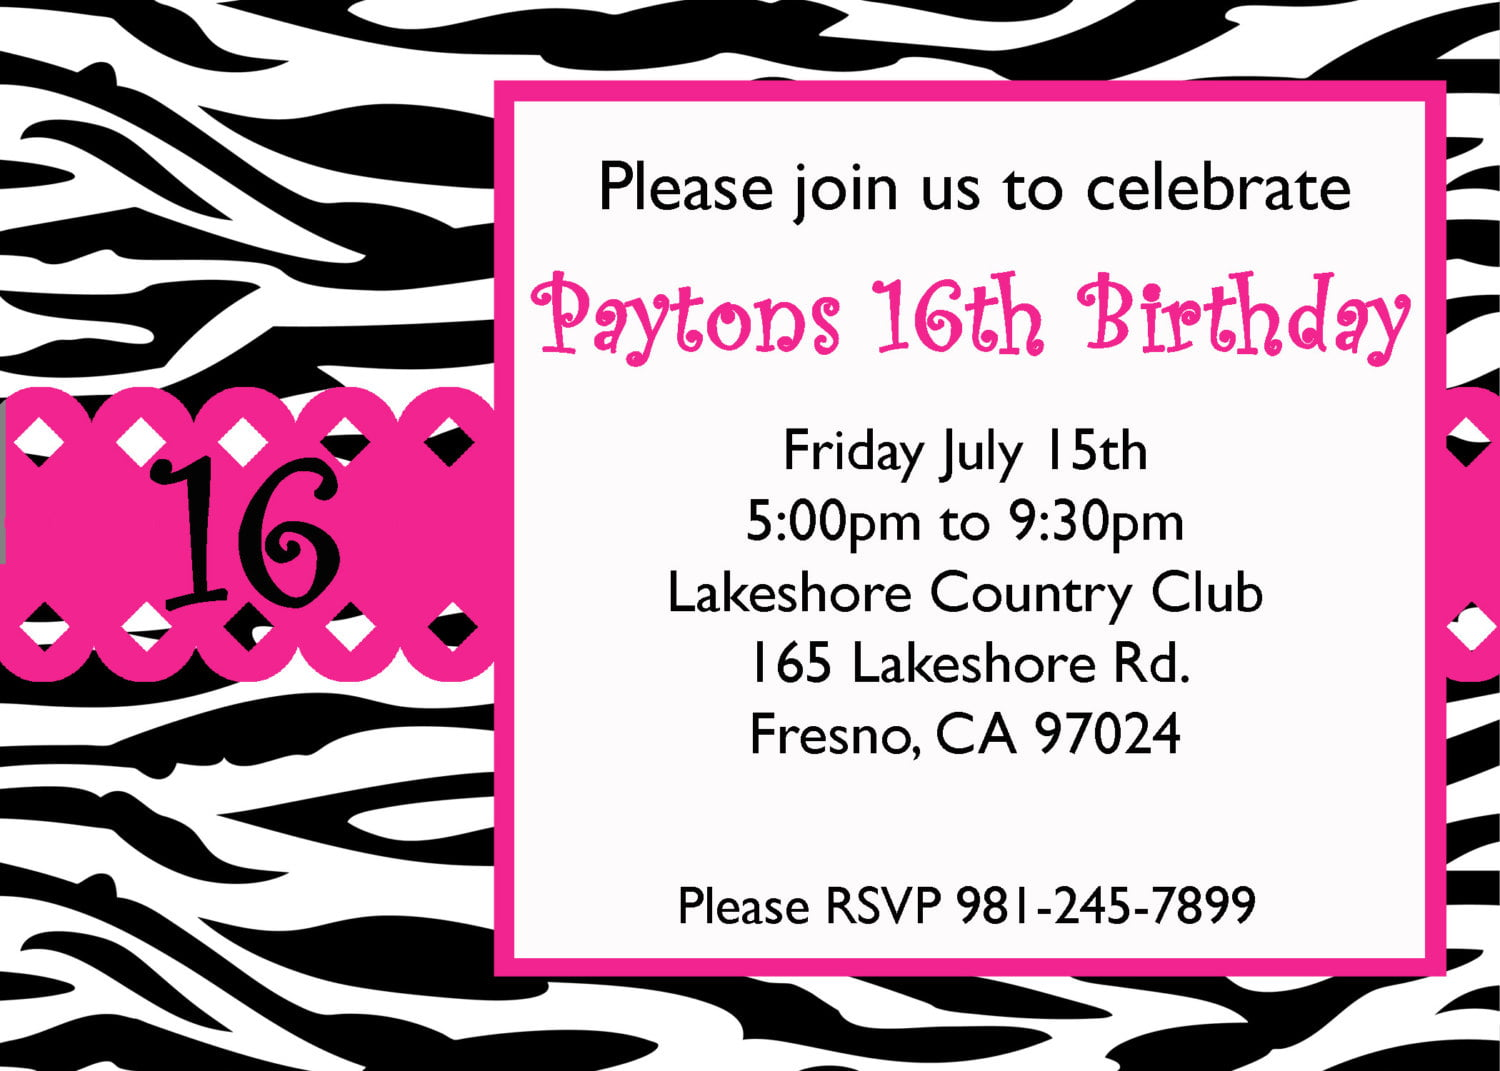 1St Birthday Invitation Design was good invitations design